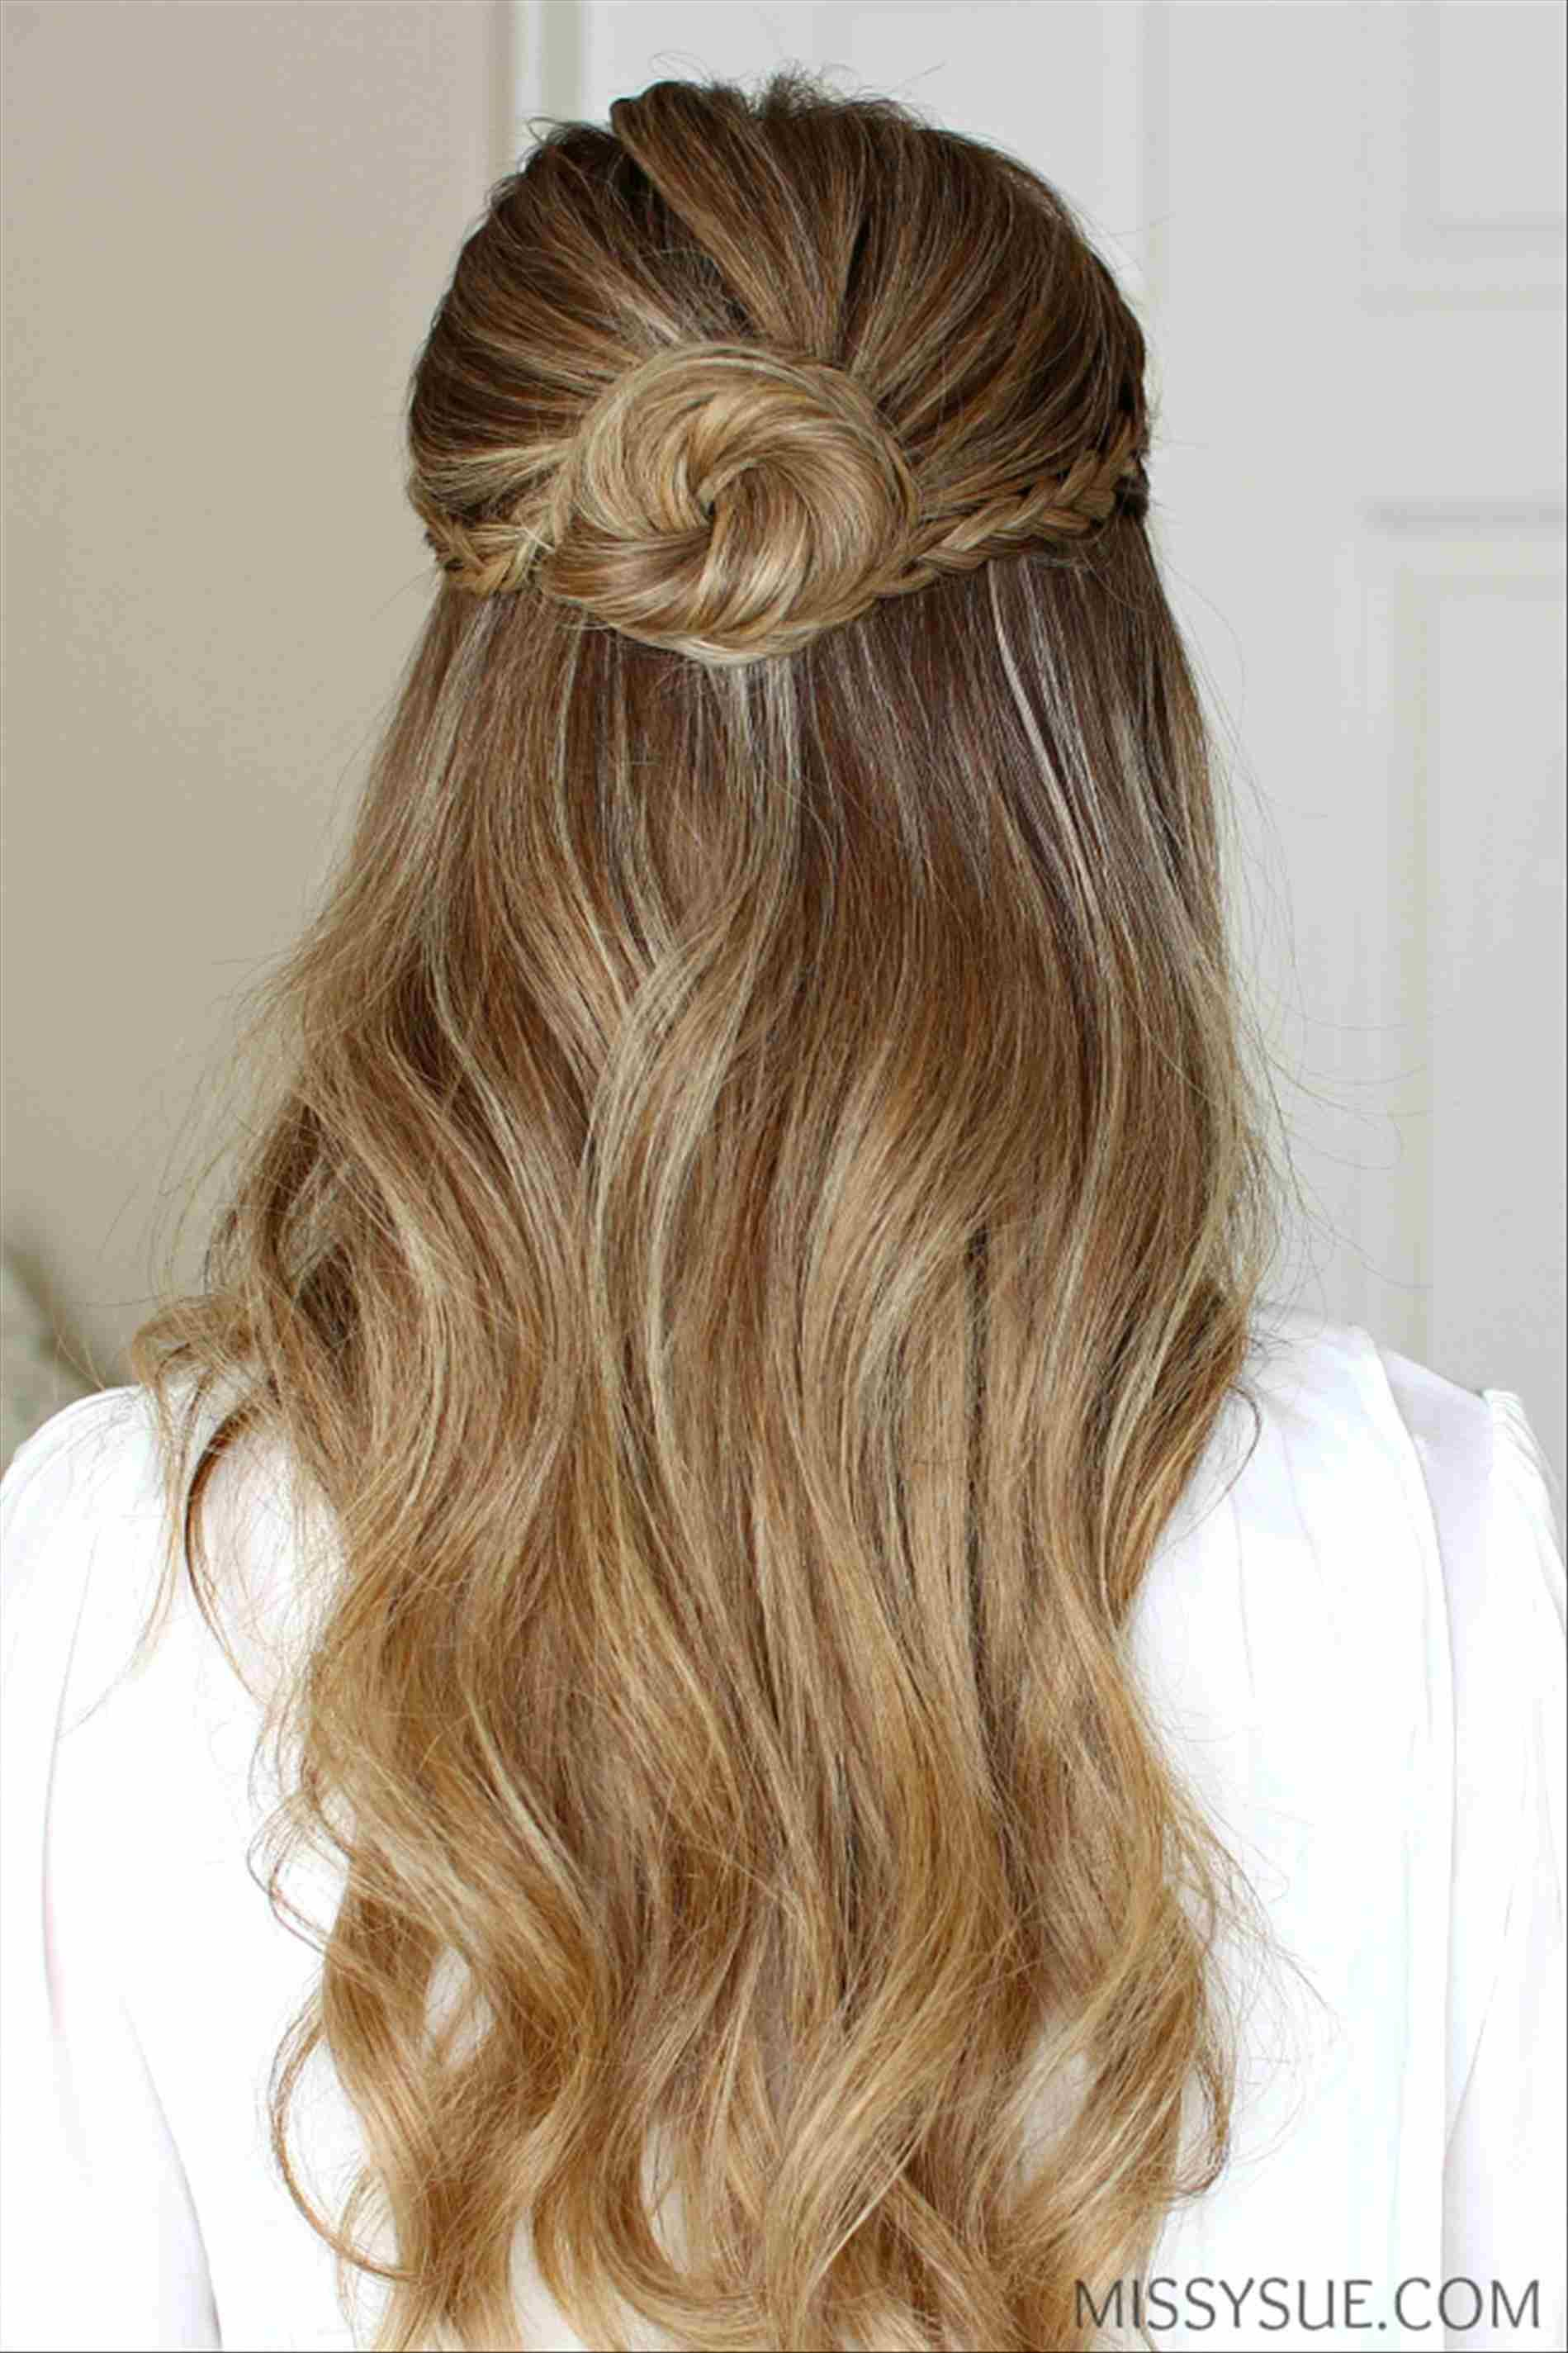 Image Result For Half Up Half Down Bun Hairstyles Half Bun Hairstyles Down Hairstyles Prom Hairstyles For Long Hair